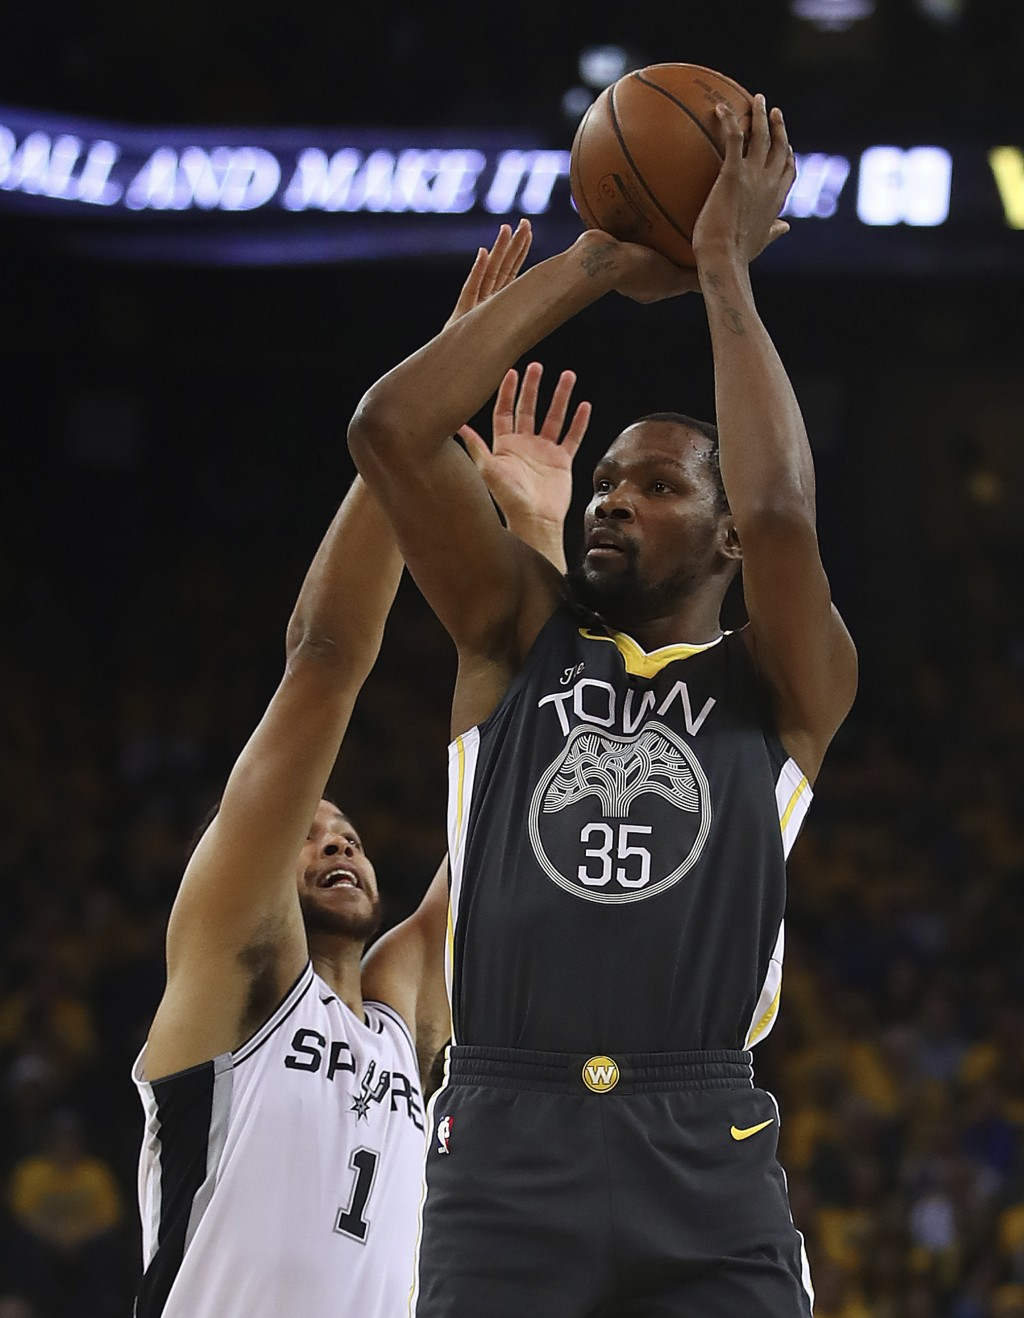 Golden State Warriors' Kevin Durant (35) shoots over San Antonio Spurs' Kyle Anderson, left, during the first quarter in Game 2 of a first-round NBA b